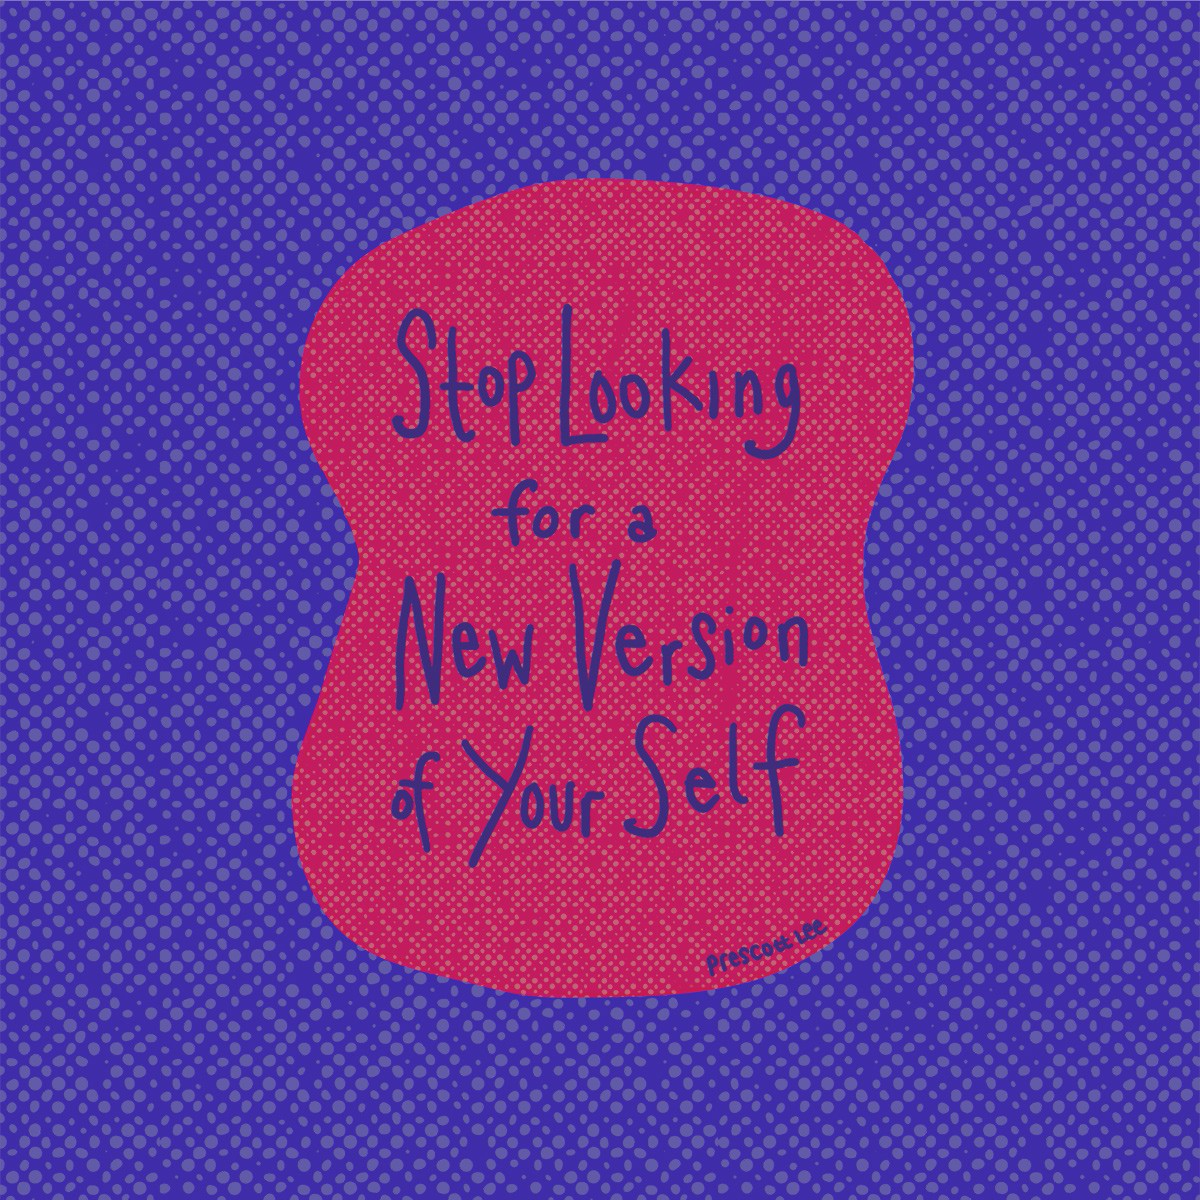 Stop looking for a new version of yourself